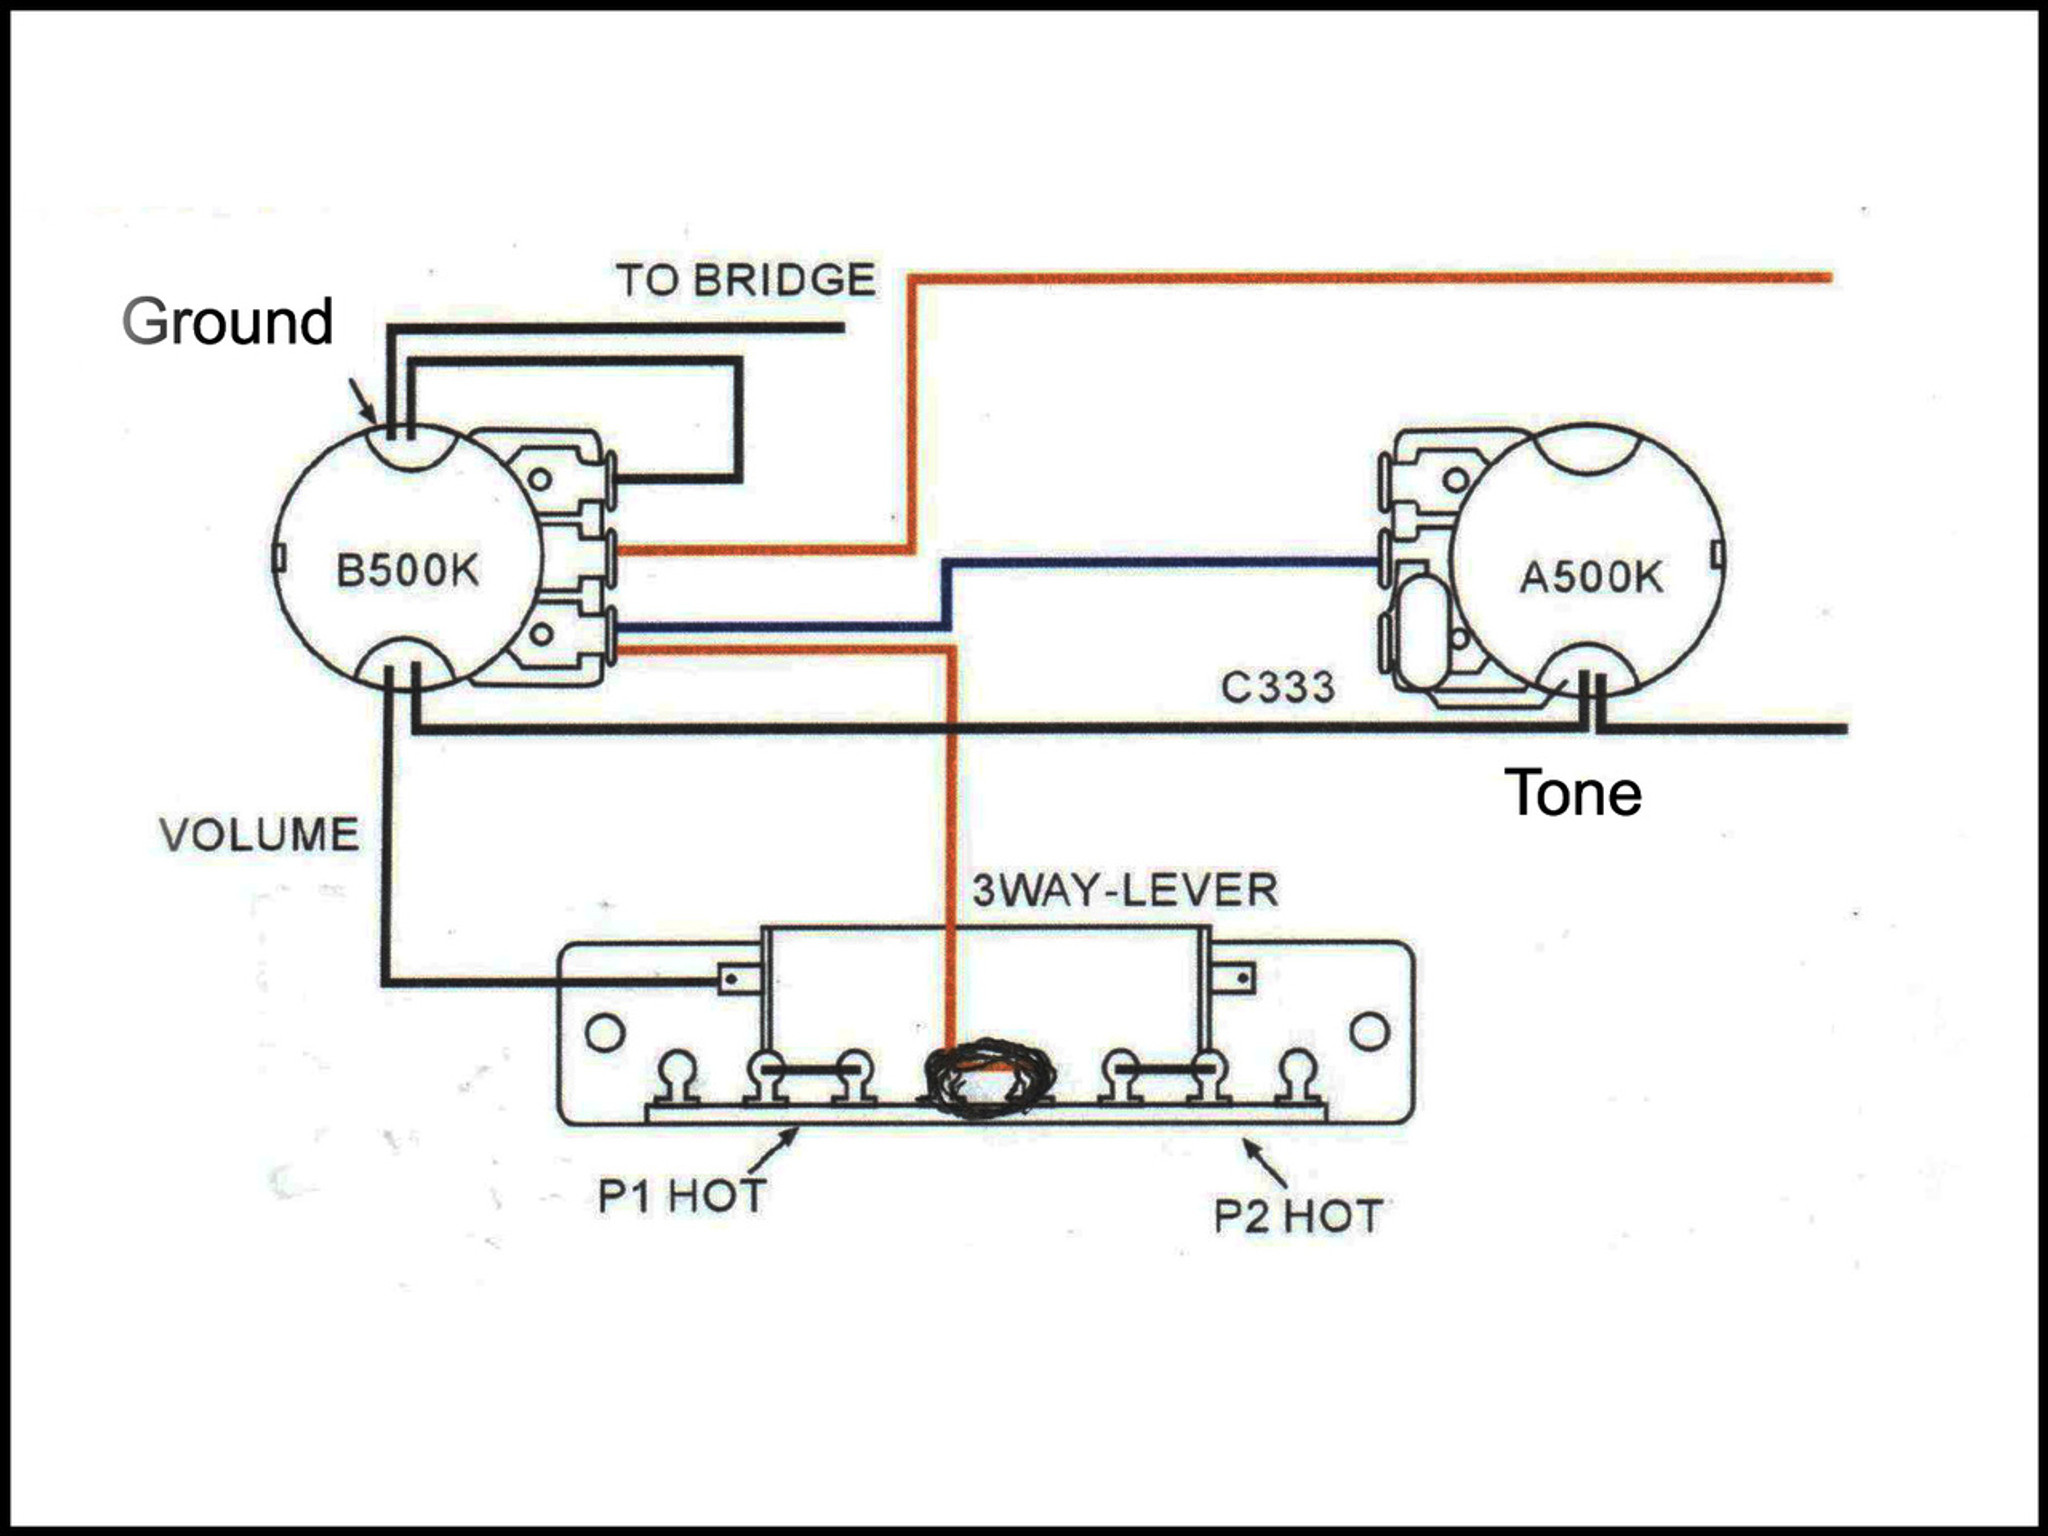 Piezo Bridge Wiring Electrical Diagrams Diagram Schematic Circuit Connection U2022 Rpm Activated Switch